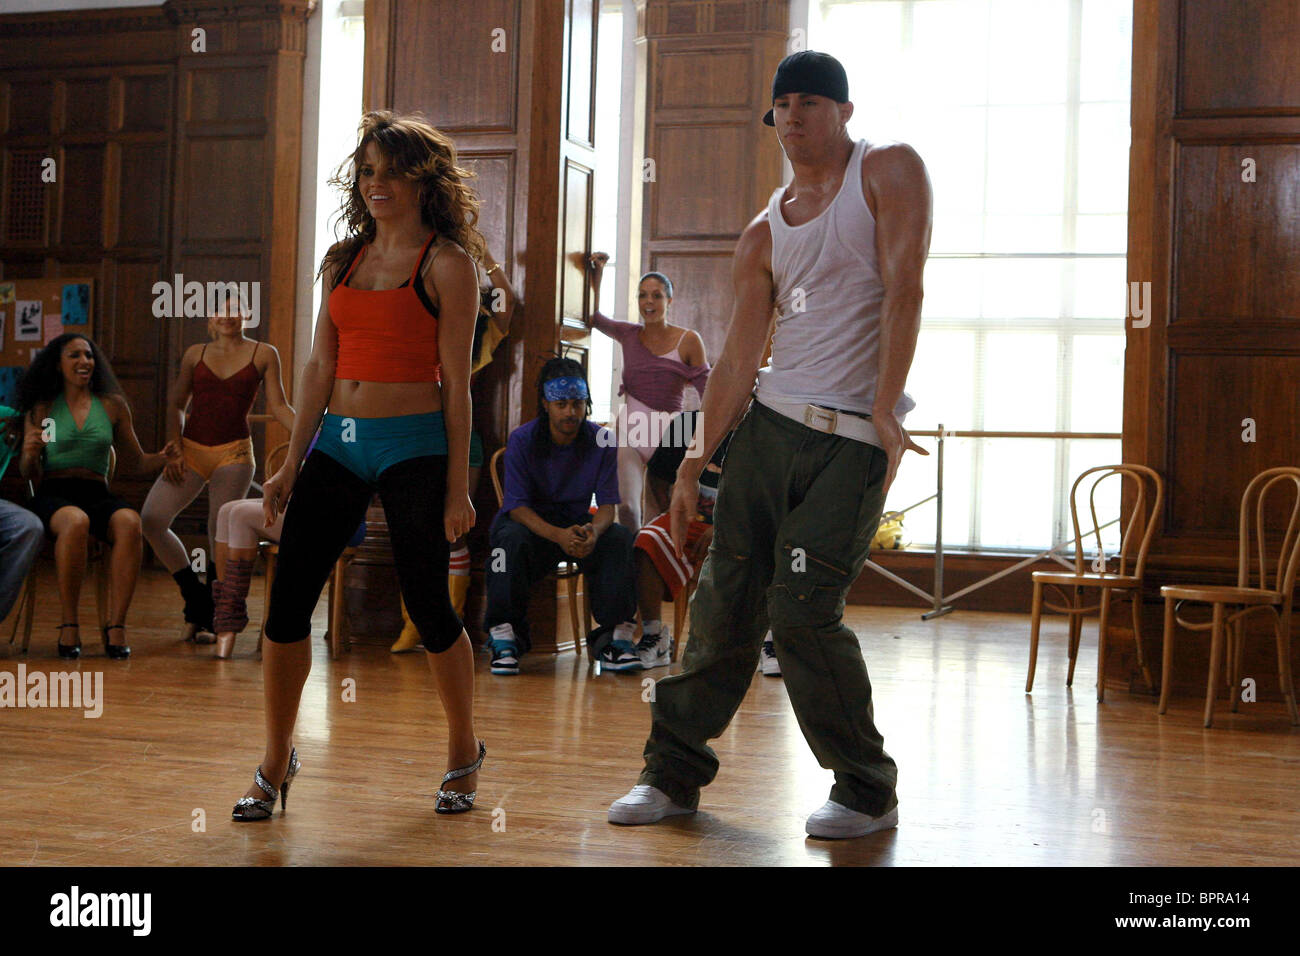 JENNA DEWAN & CHANNING TATUM STEP UP (2006 Stock Photo ...